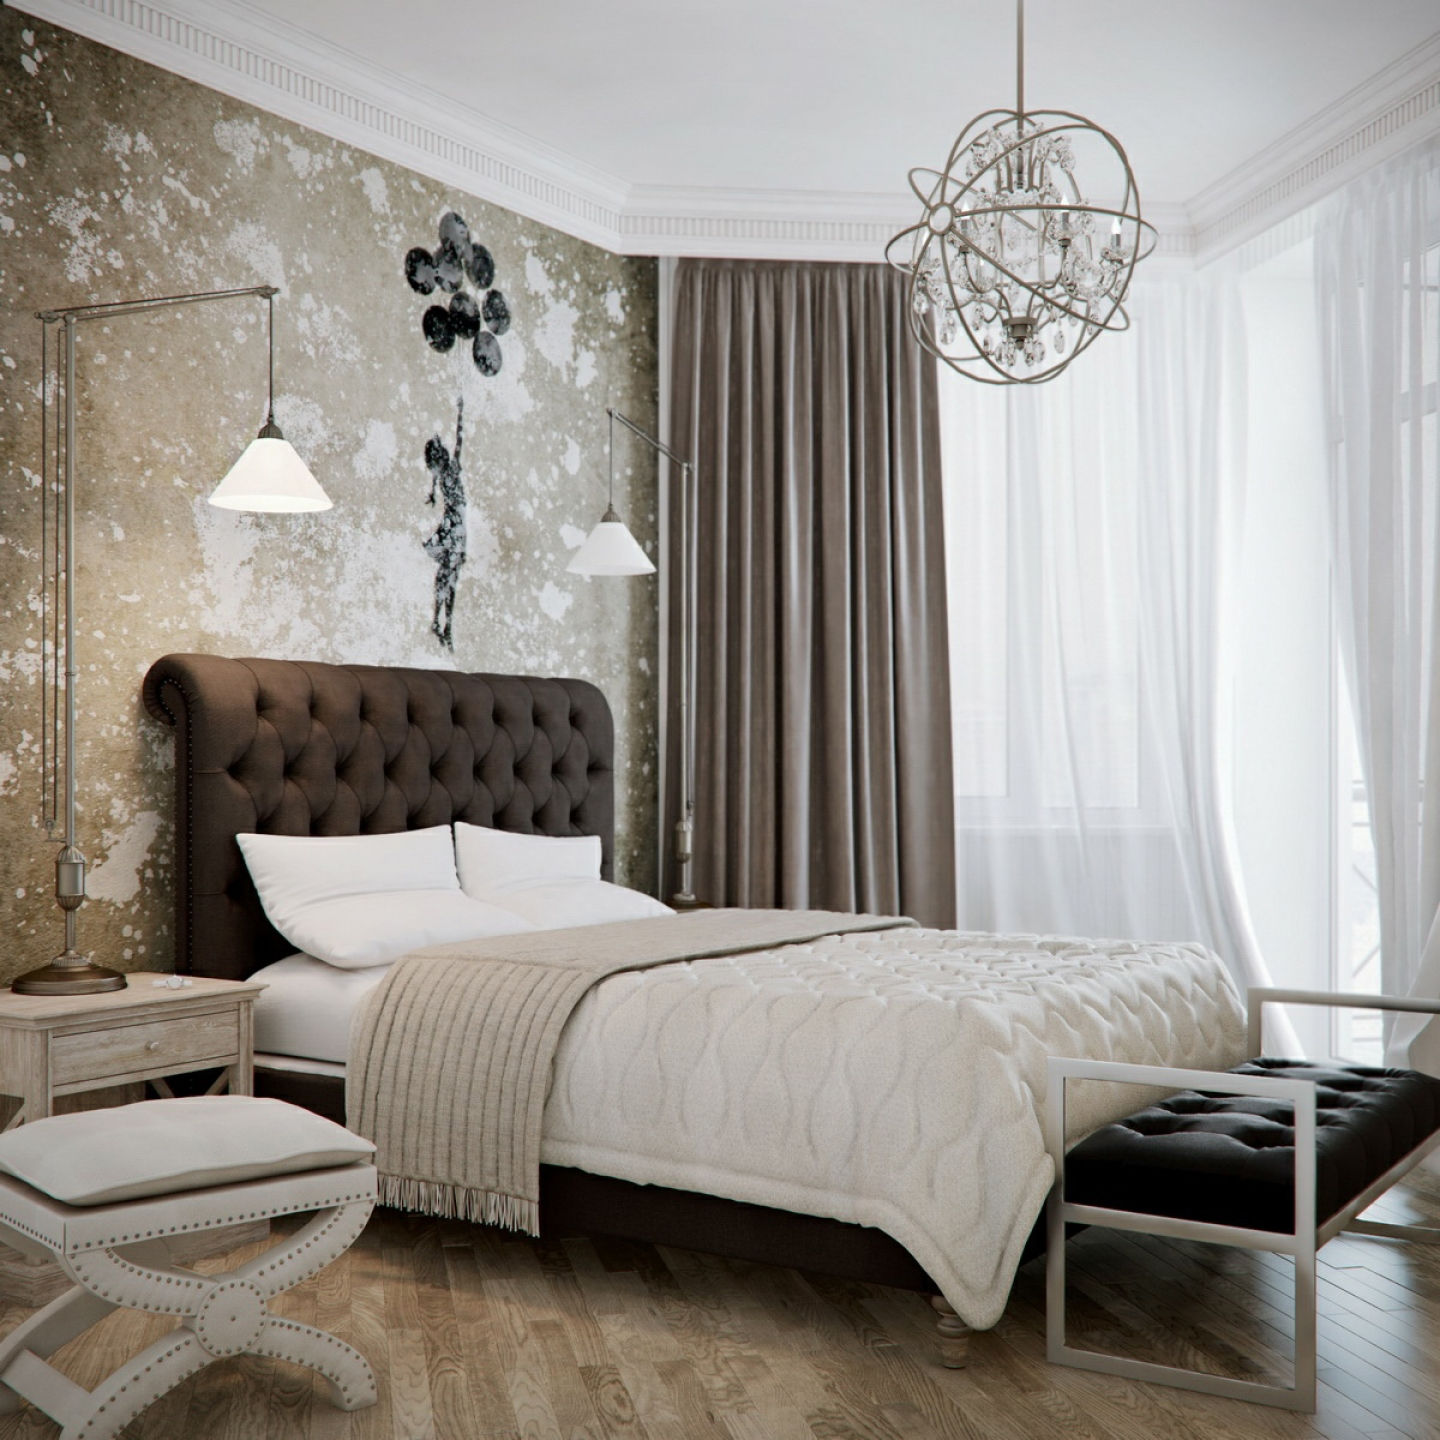 bedroom-interior-modern-wrought-iron-cage-chandelier-over-master-bed-having-tufted-upholstered-headboard-combined-with-wall-lights-modern-chandeliers-for-bedrooms